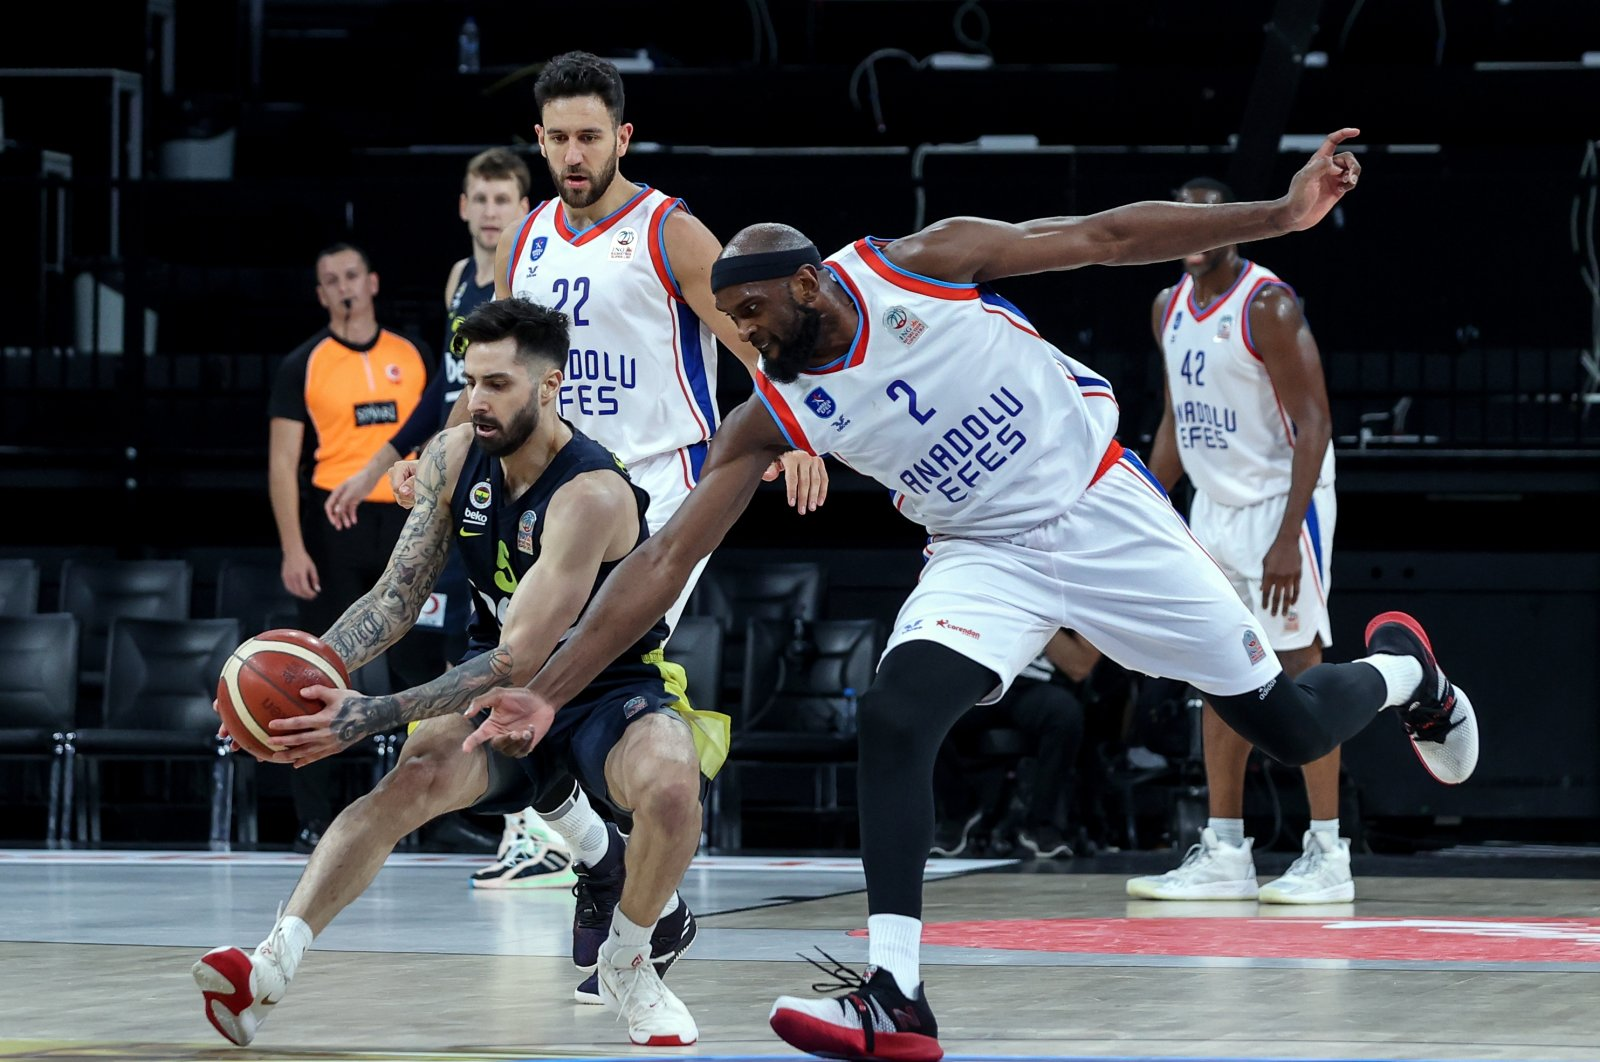 Anadolu Efes power forward Christopher Singleton JR (R) vies for the ball with Fenerbahçe Beko's Alex Daniel Perez during the second match of the ING Basketball Süper Lig 2020-2021 season playoff finals at Istanbul's Sinan Erdem Arena, Istanbul, Turkey, Saturday, June 6, 2021. (AA Photo)